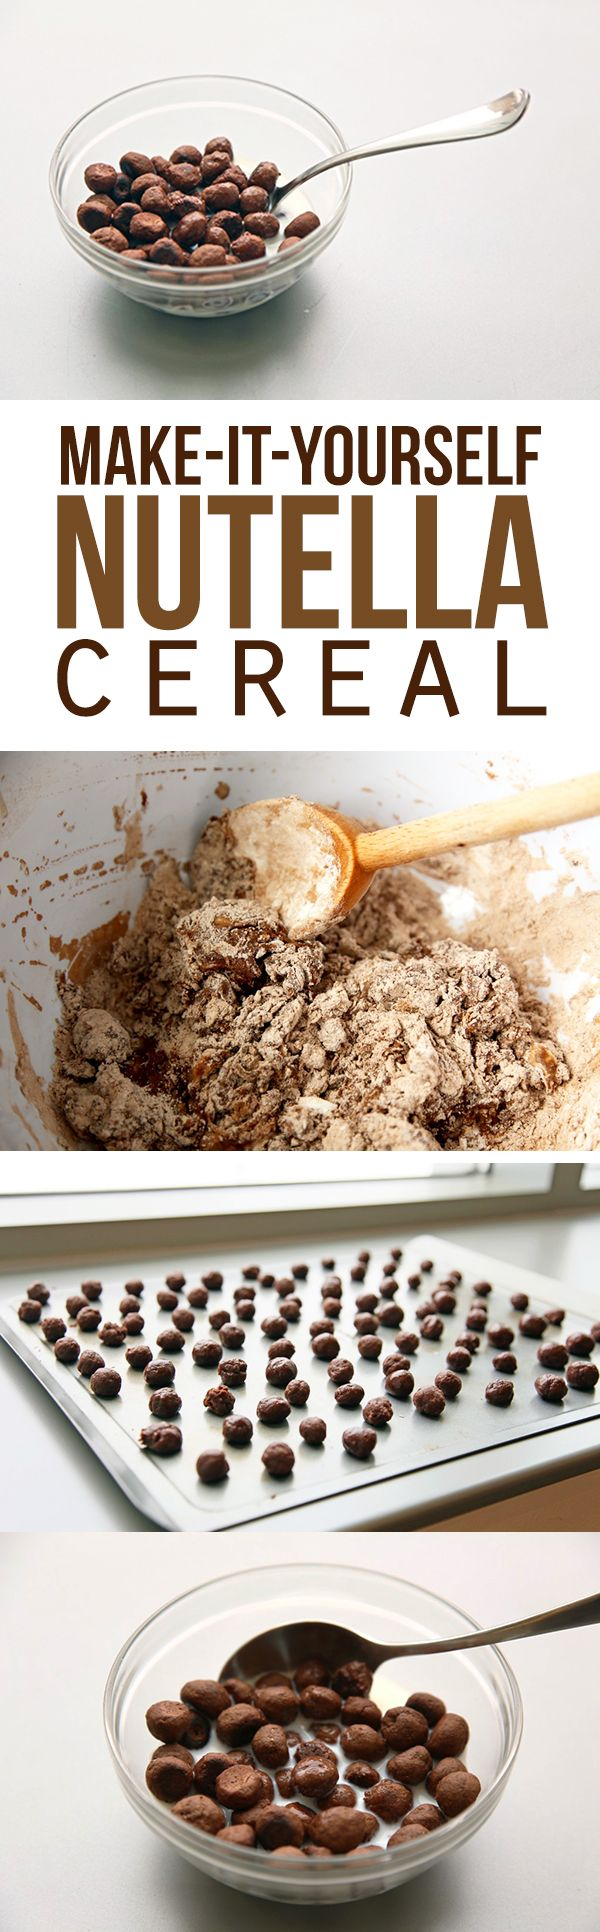 Make Your Own Nutella Cereal and Never Buy the Boxed Stuff Again